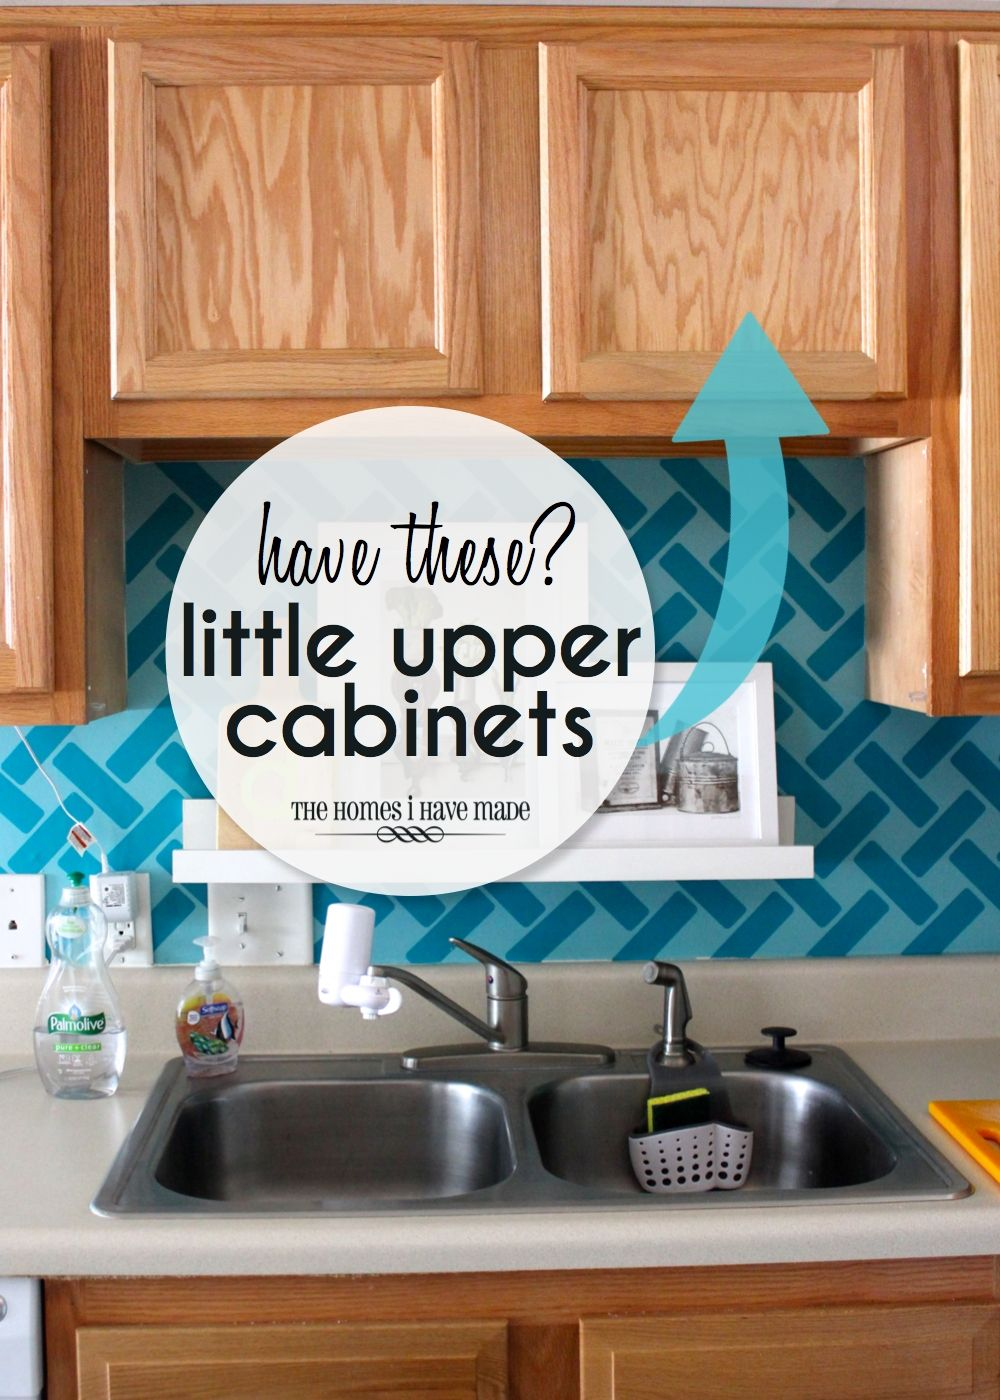 Storage Ideas For Little Upper Cabinets The Homes I Have Made Upper Kitchen Cabinets Kitchen Organization Diy Kitchen Organization